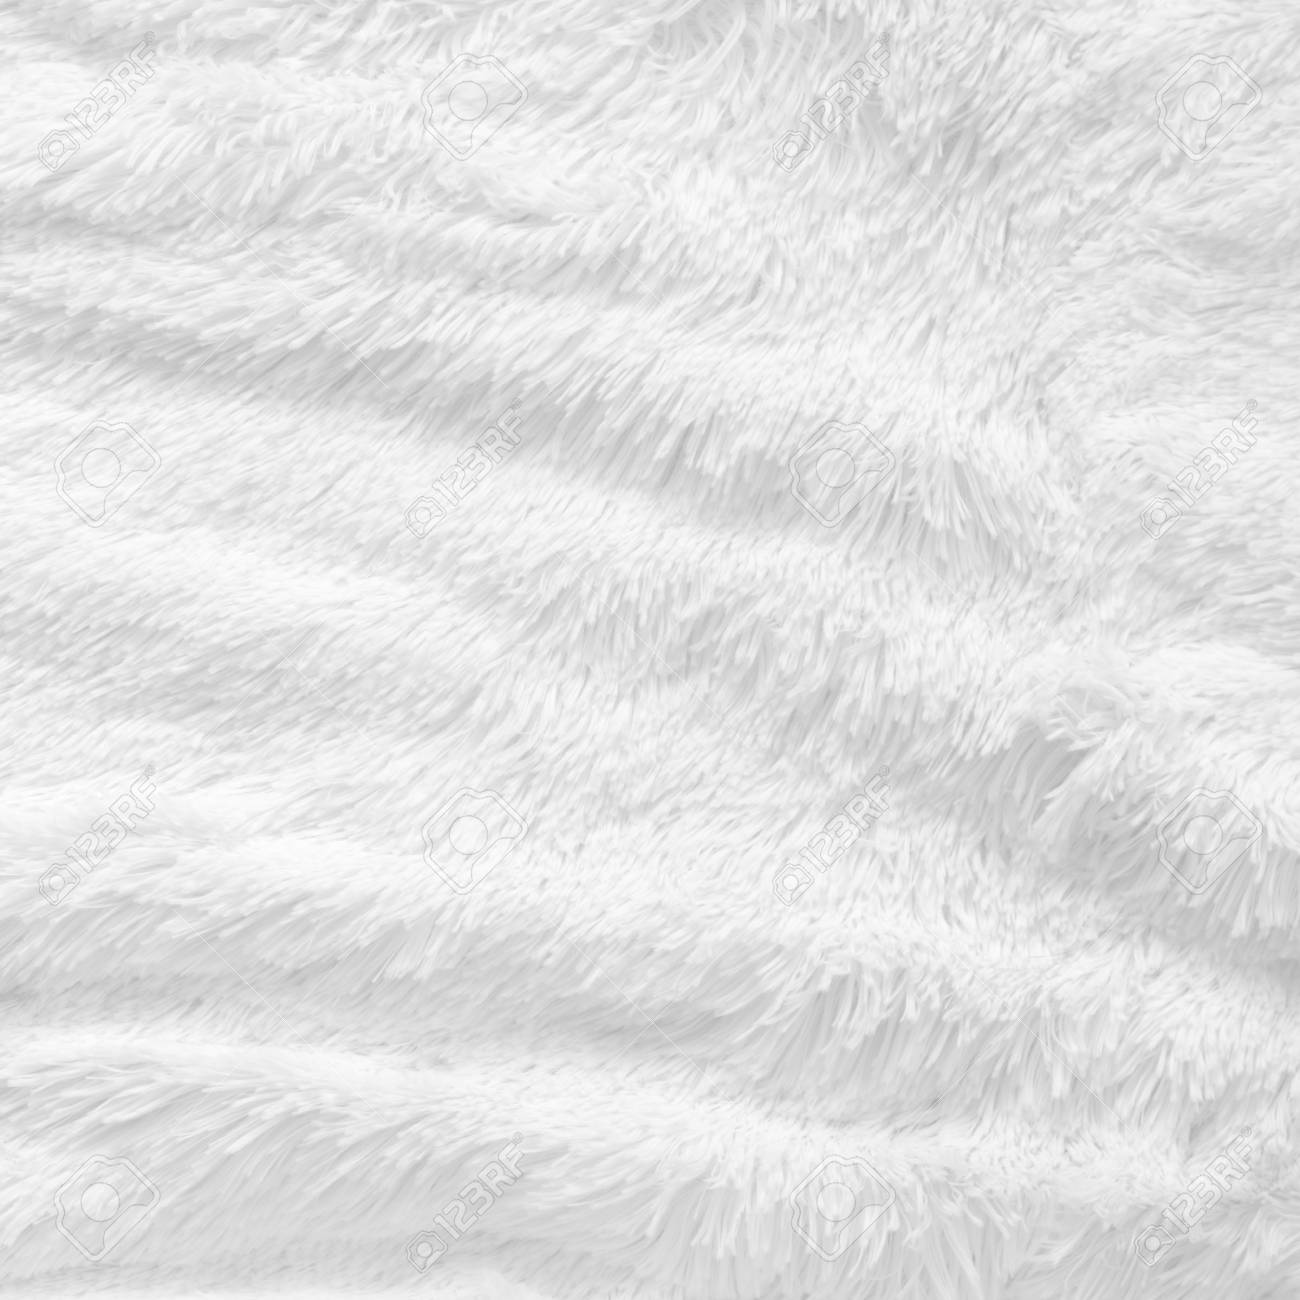 Beautiful White Shaggy Blanket Texture As Background. Fluffy Fake Textile  VO94